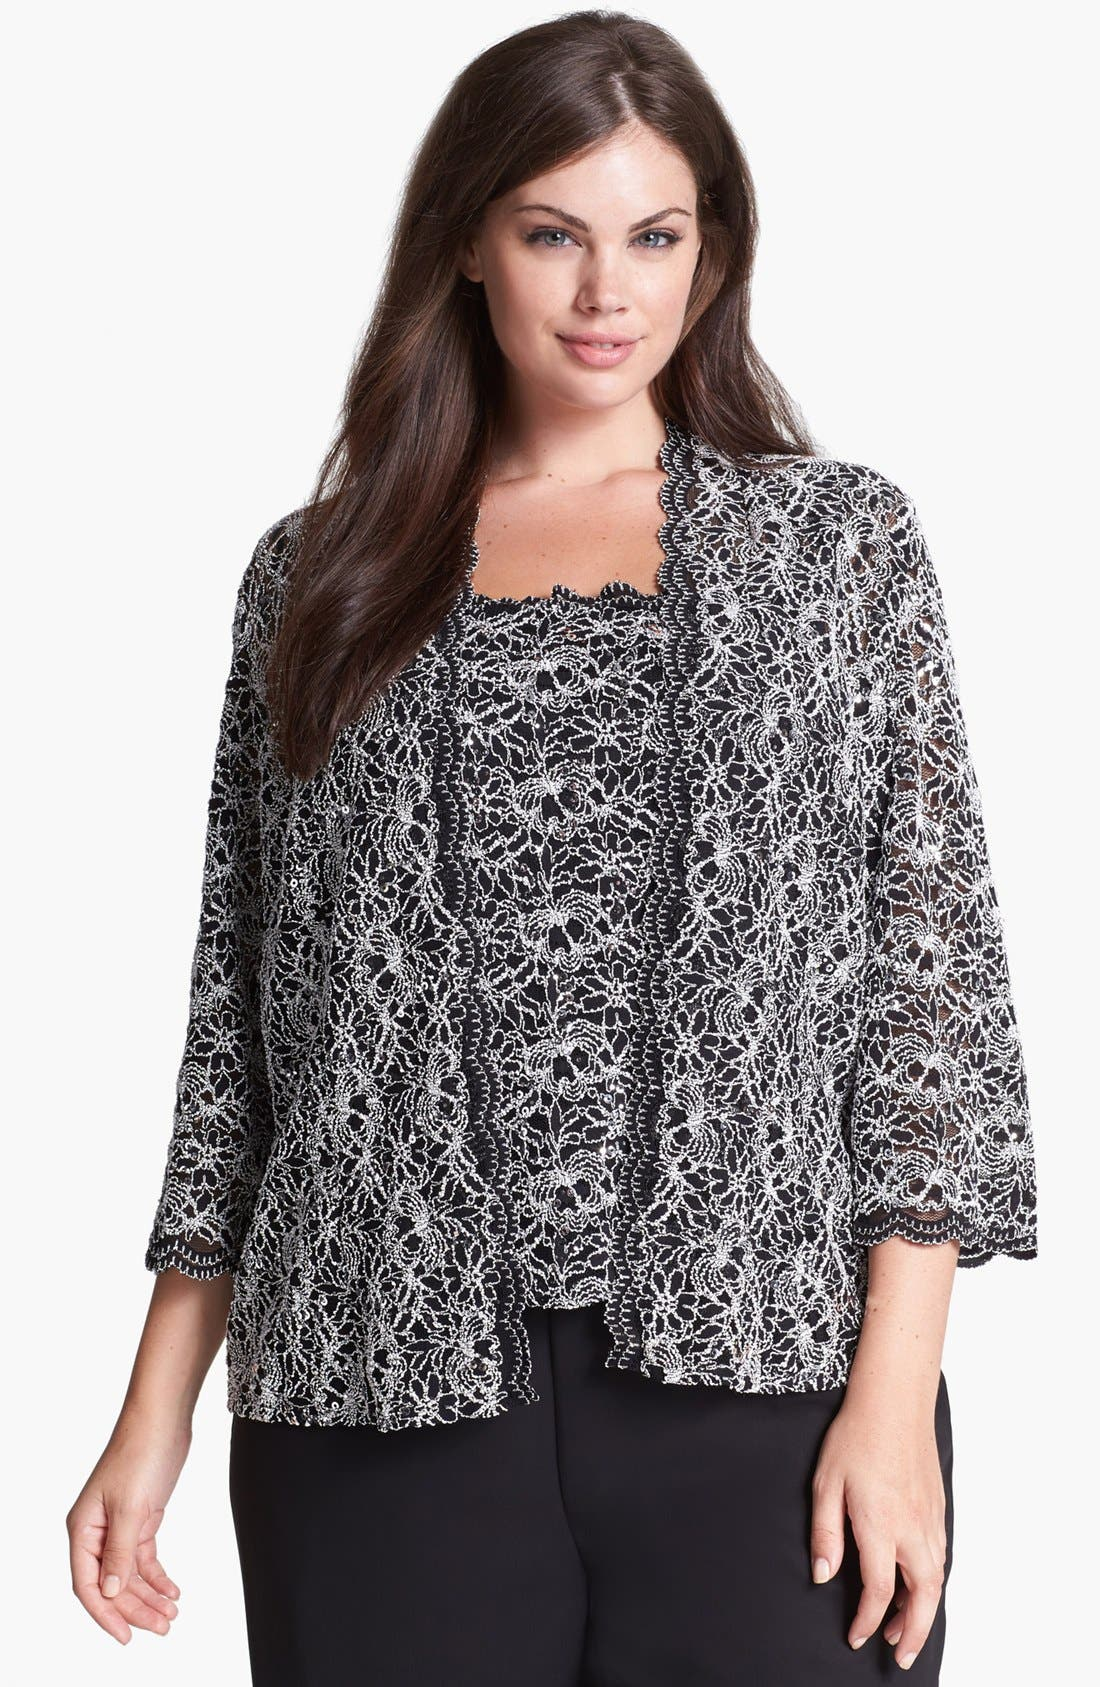 Alternate Image 1 Selected - Alex Evenings Embellished Lace Twinset (Plus Size)